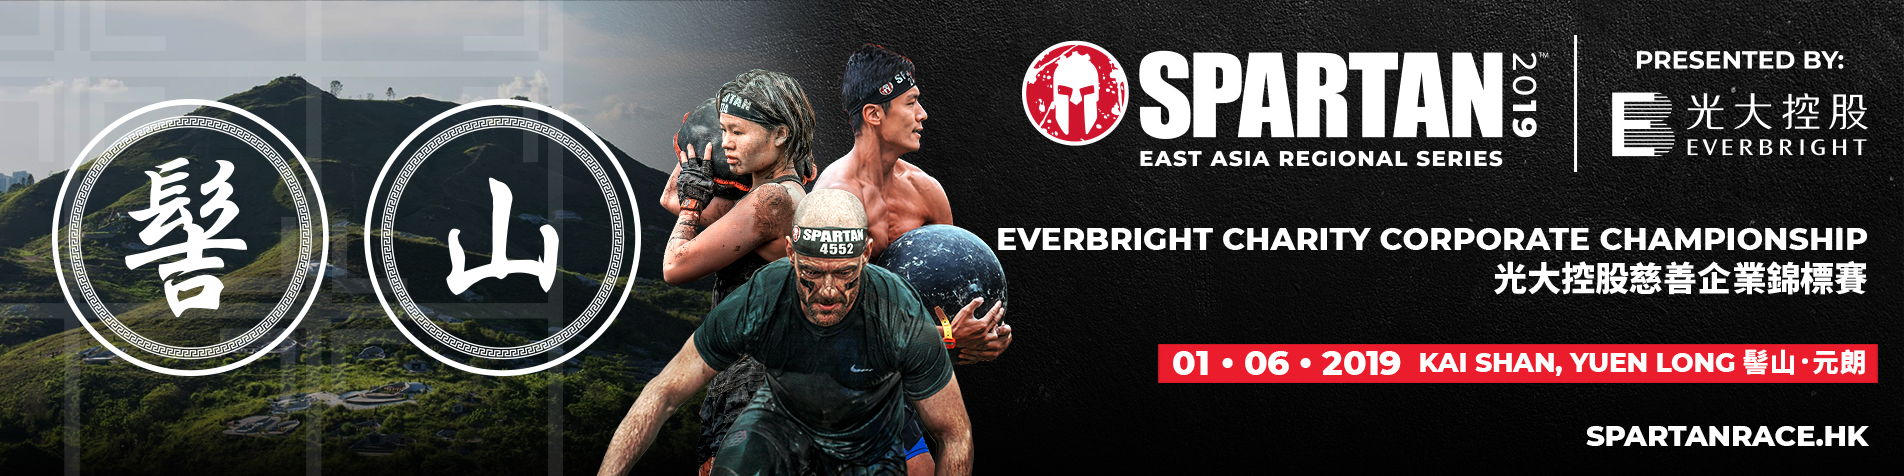 2019 Spartan Everbright Corporate Championship - InspiringHK Sports Foundation